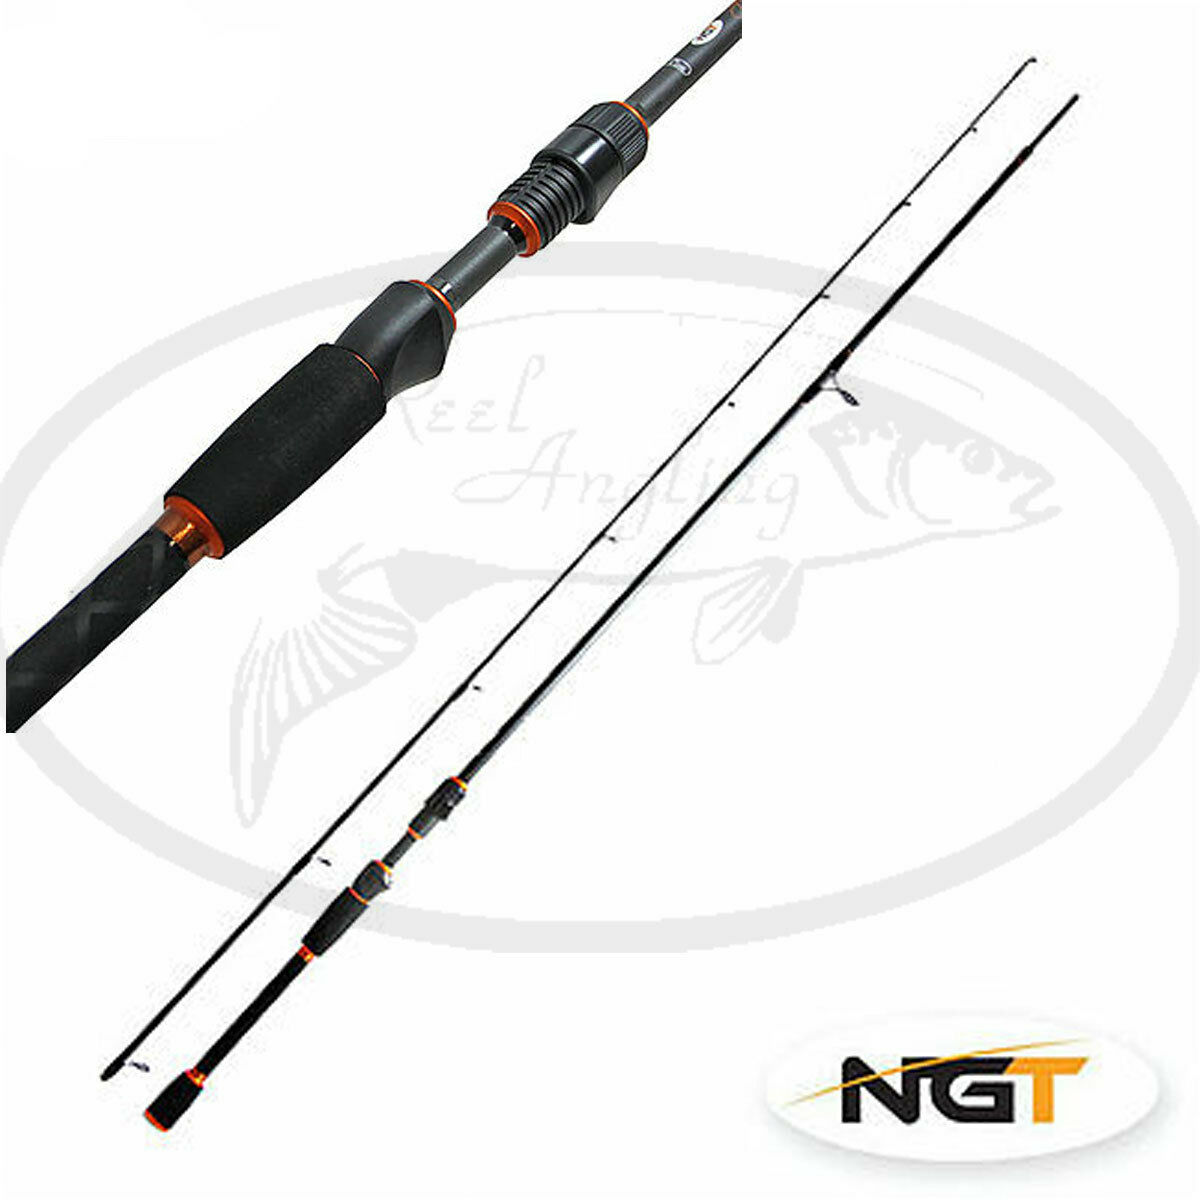 Dynamic Drop Shot rod LRF 7ft  Spinning Lure protator Travel NGT Fishing Tackle